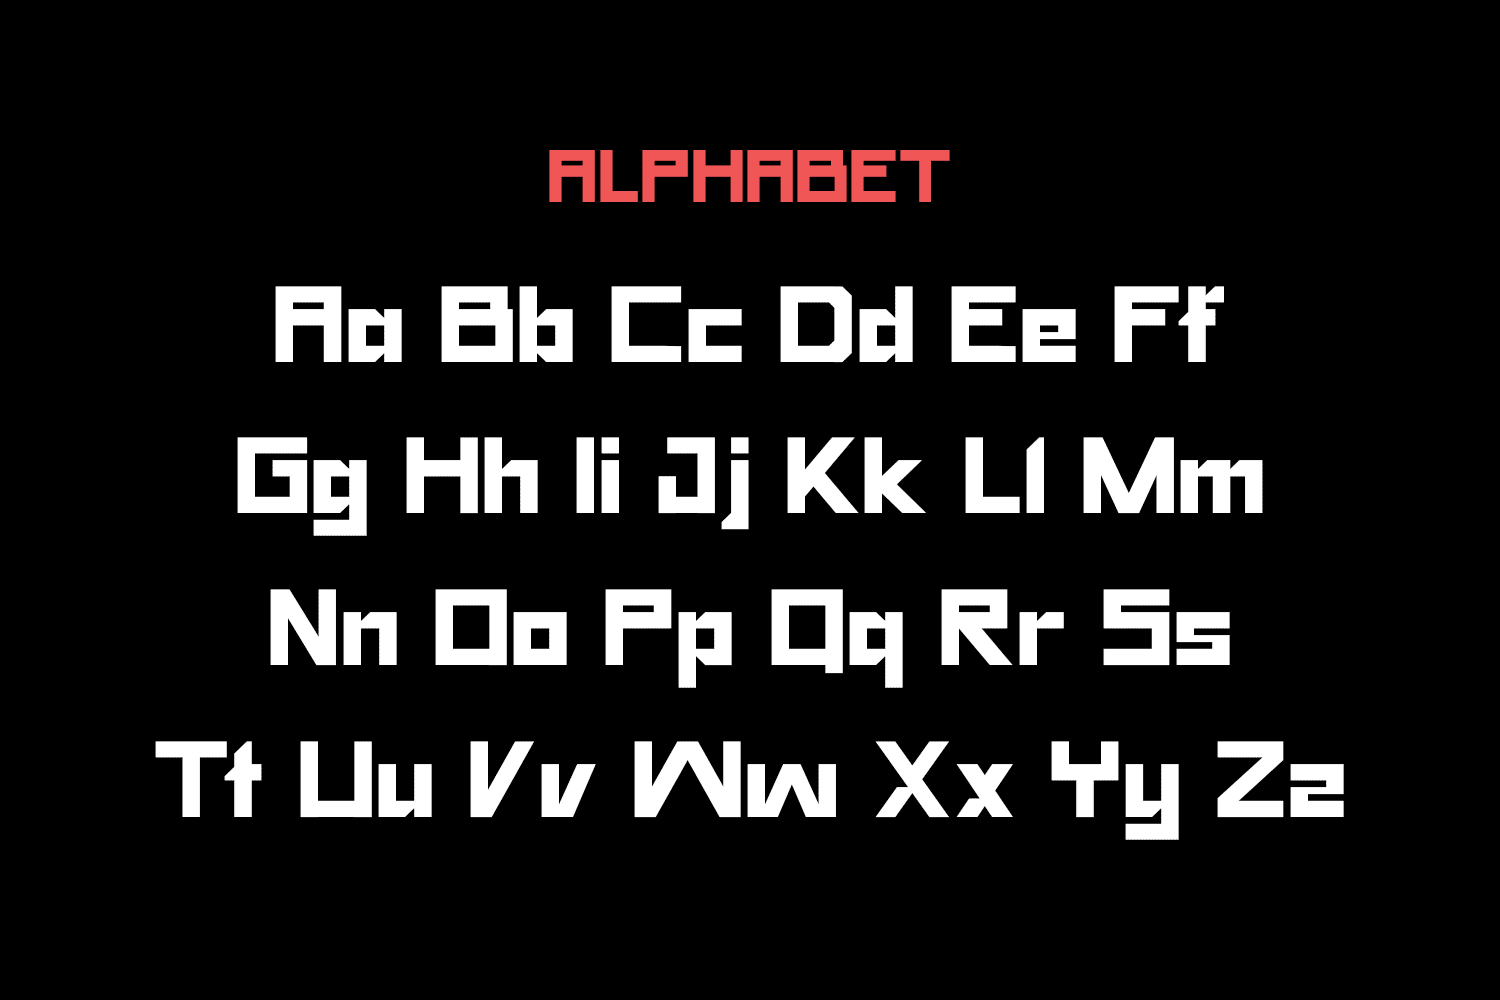 yet-untitled-display-font-alphabet-designalot